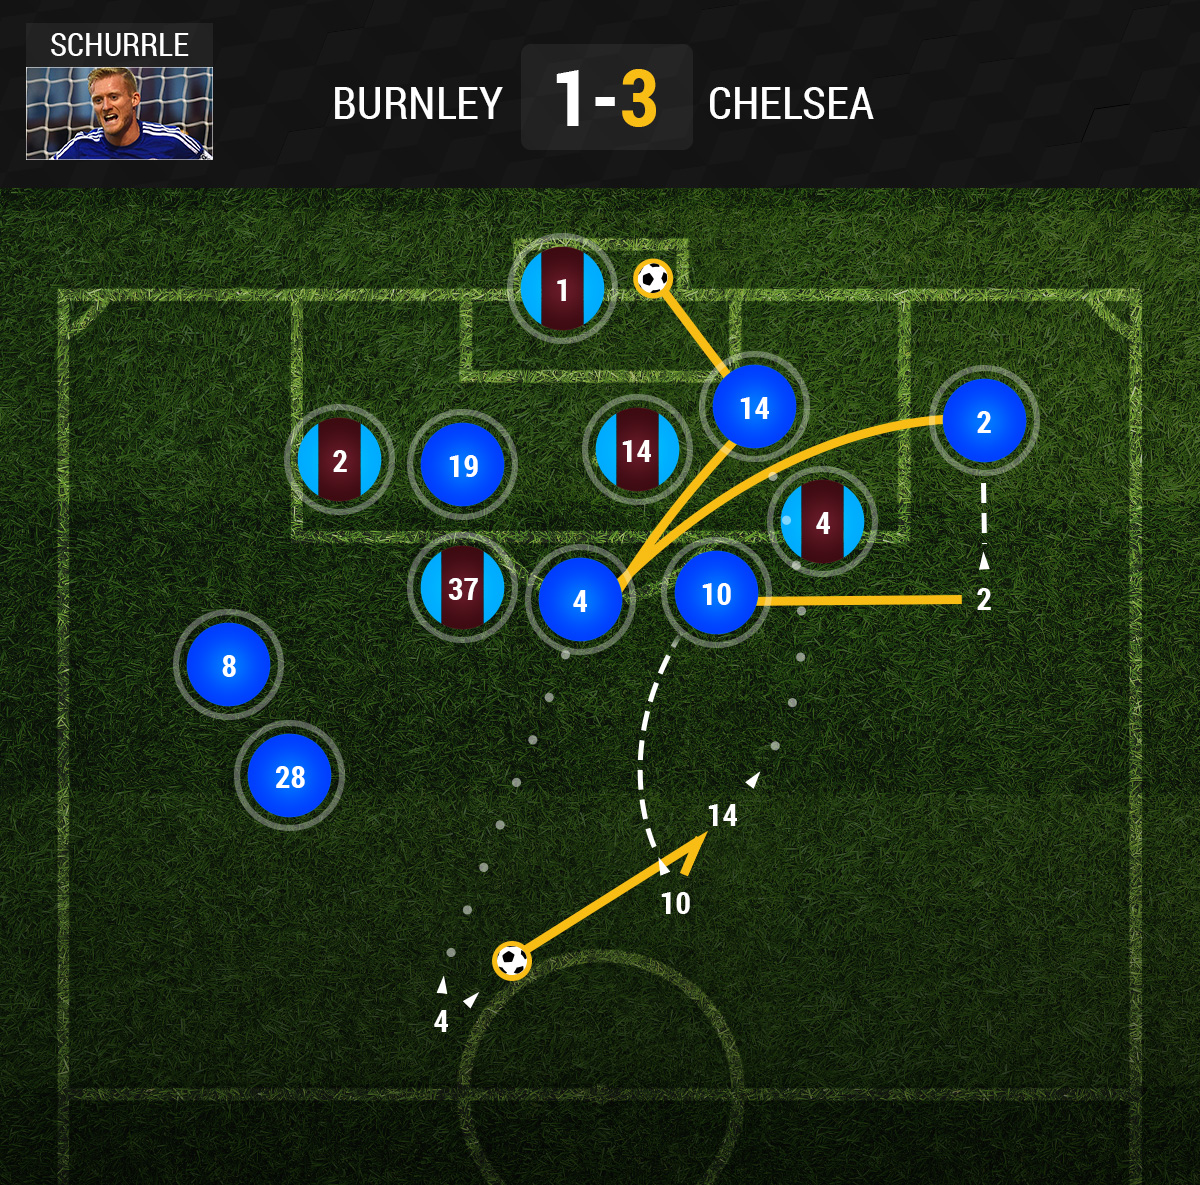 goal-season-schurrle-burnley-15